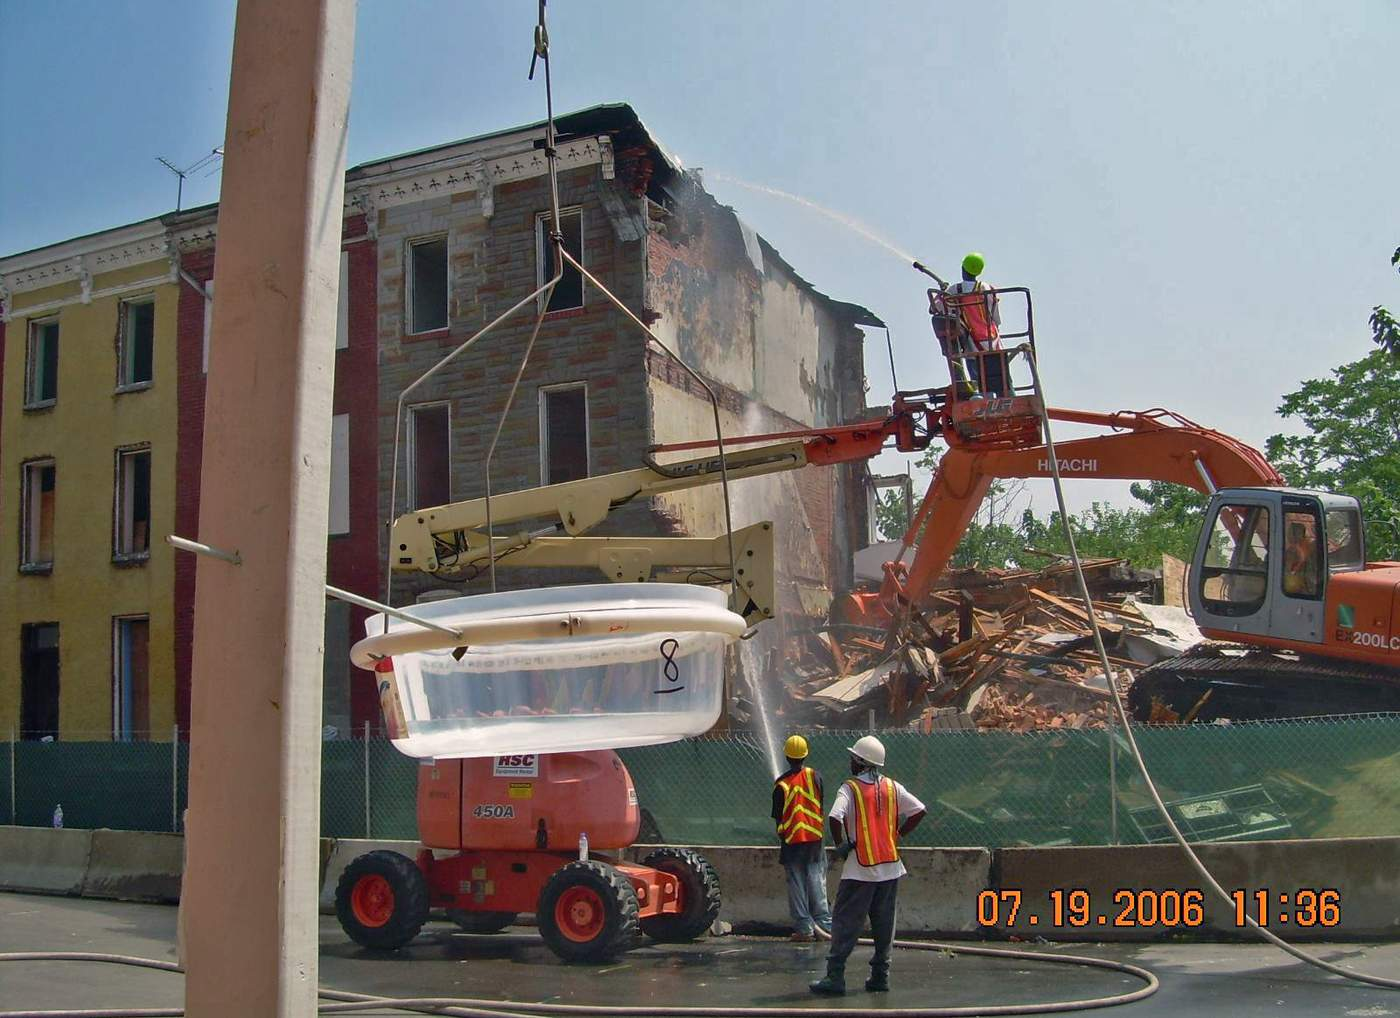 A research team uses a lead dust fall sampling apparatus to measure lead levels in the air during a demolition in Baltimore. (Courtesy  David Jacobs )